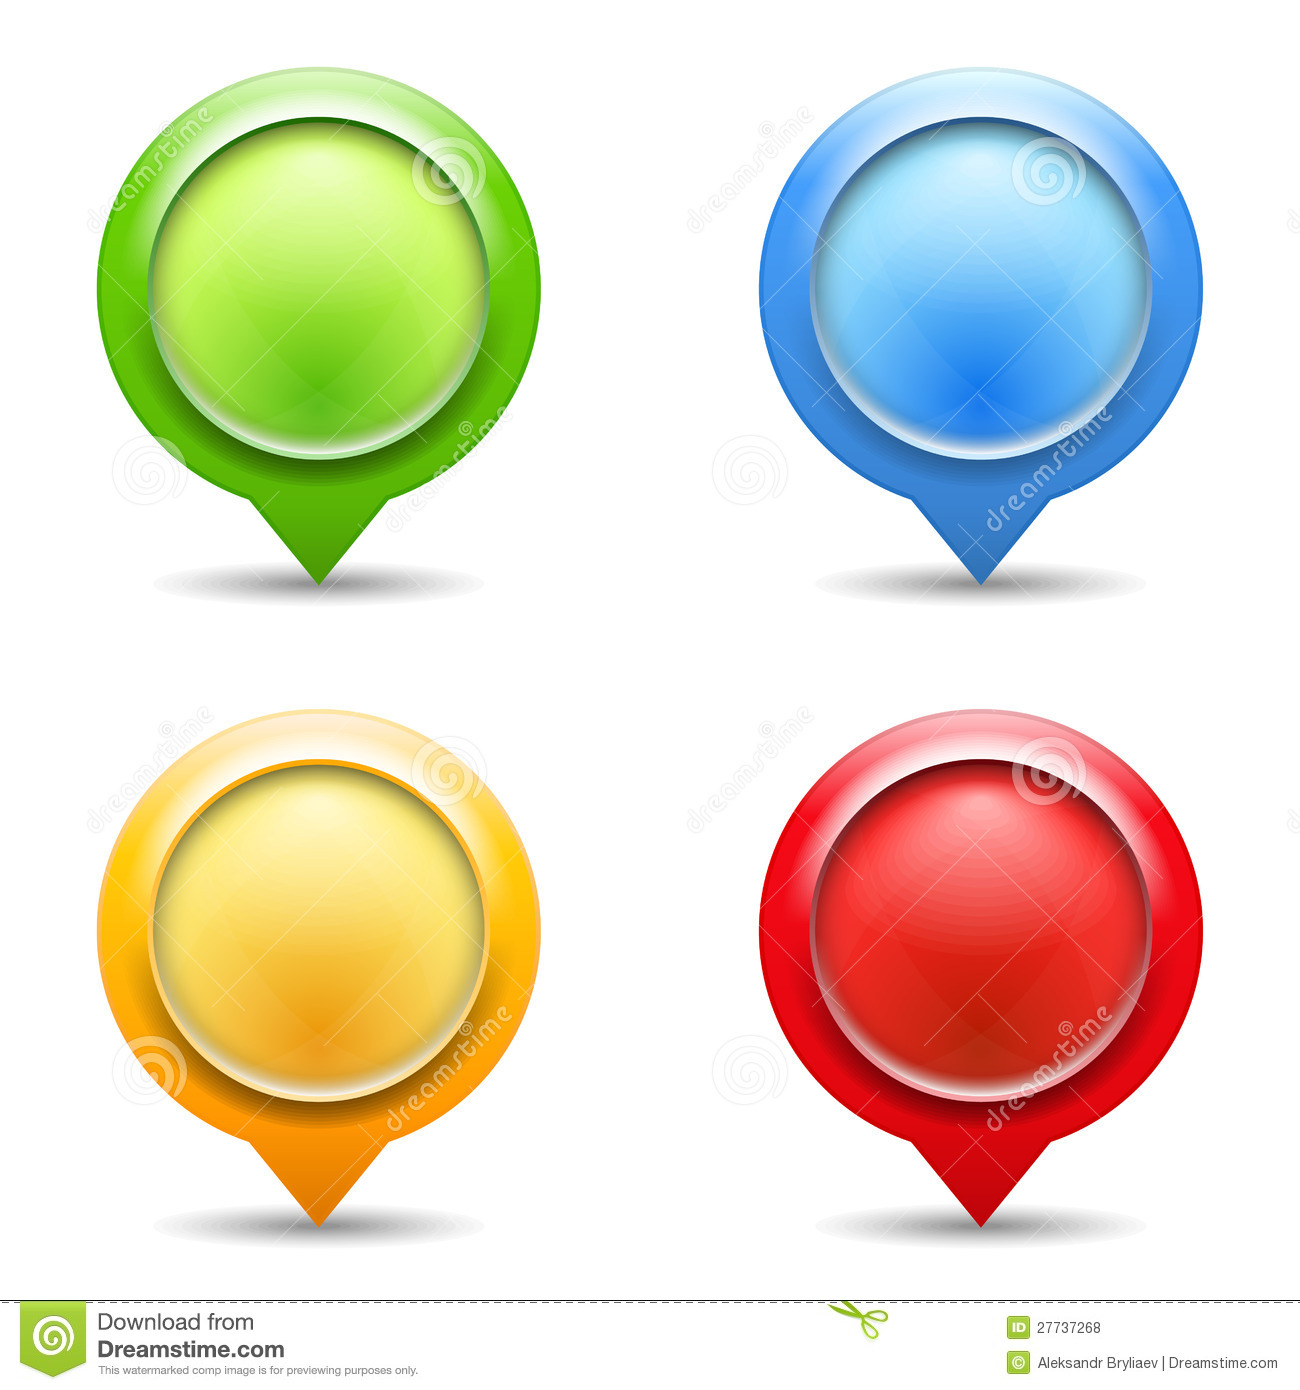 Map Pins With Images Stock Image - Image: 23867221